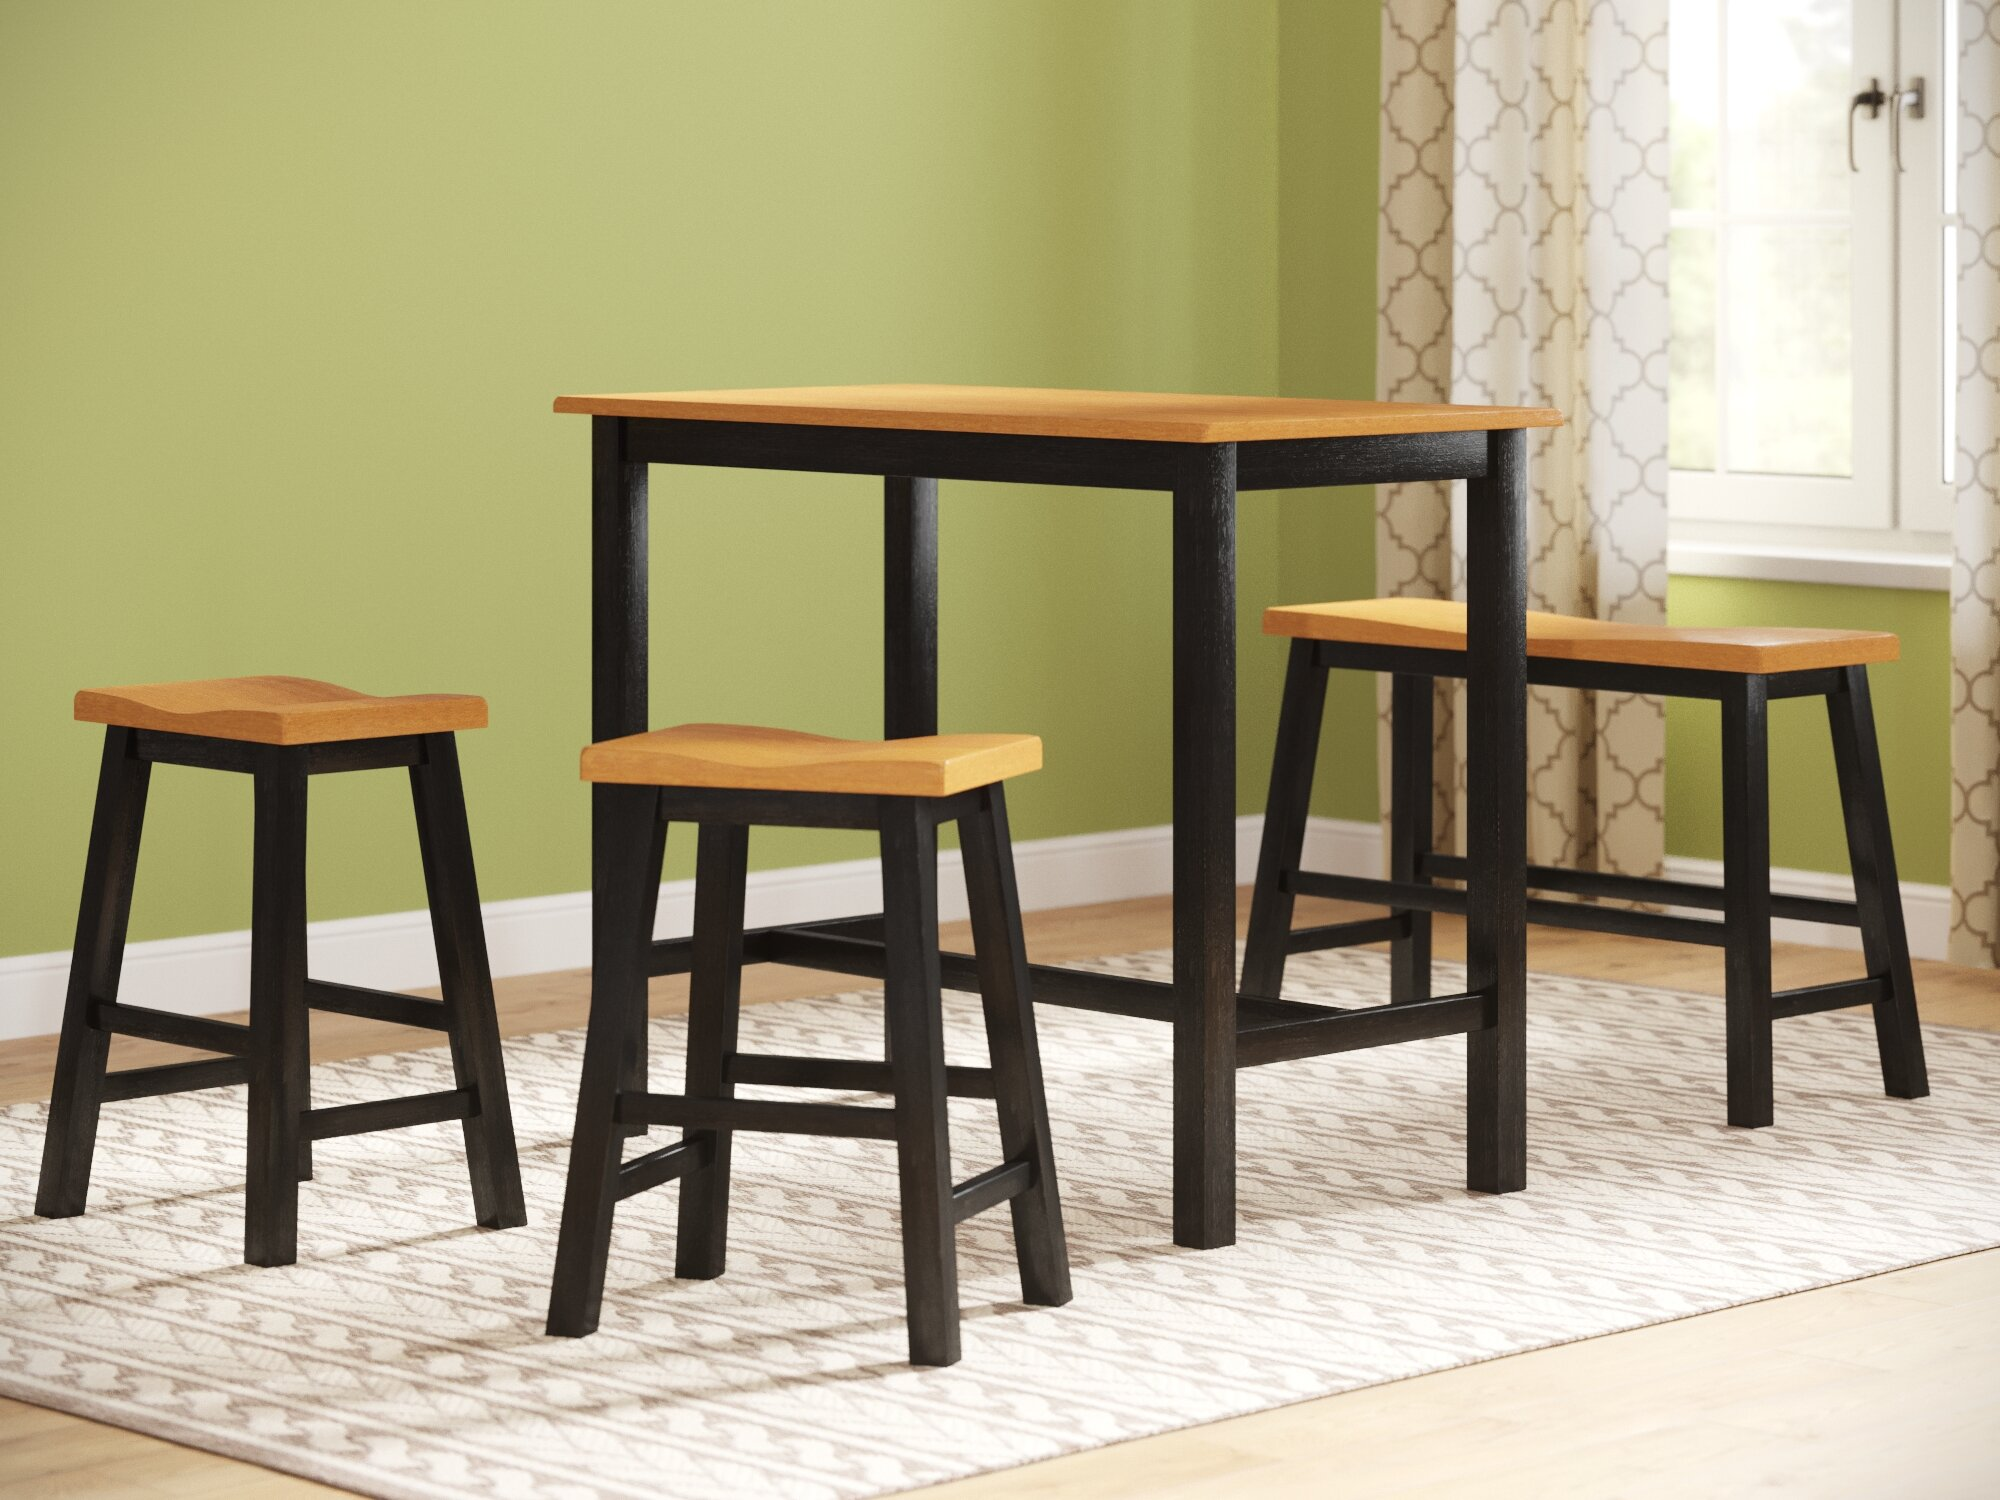 Best Of Pub Table and Bar Stools